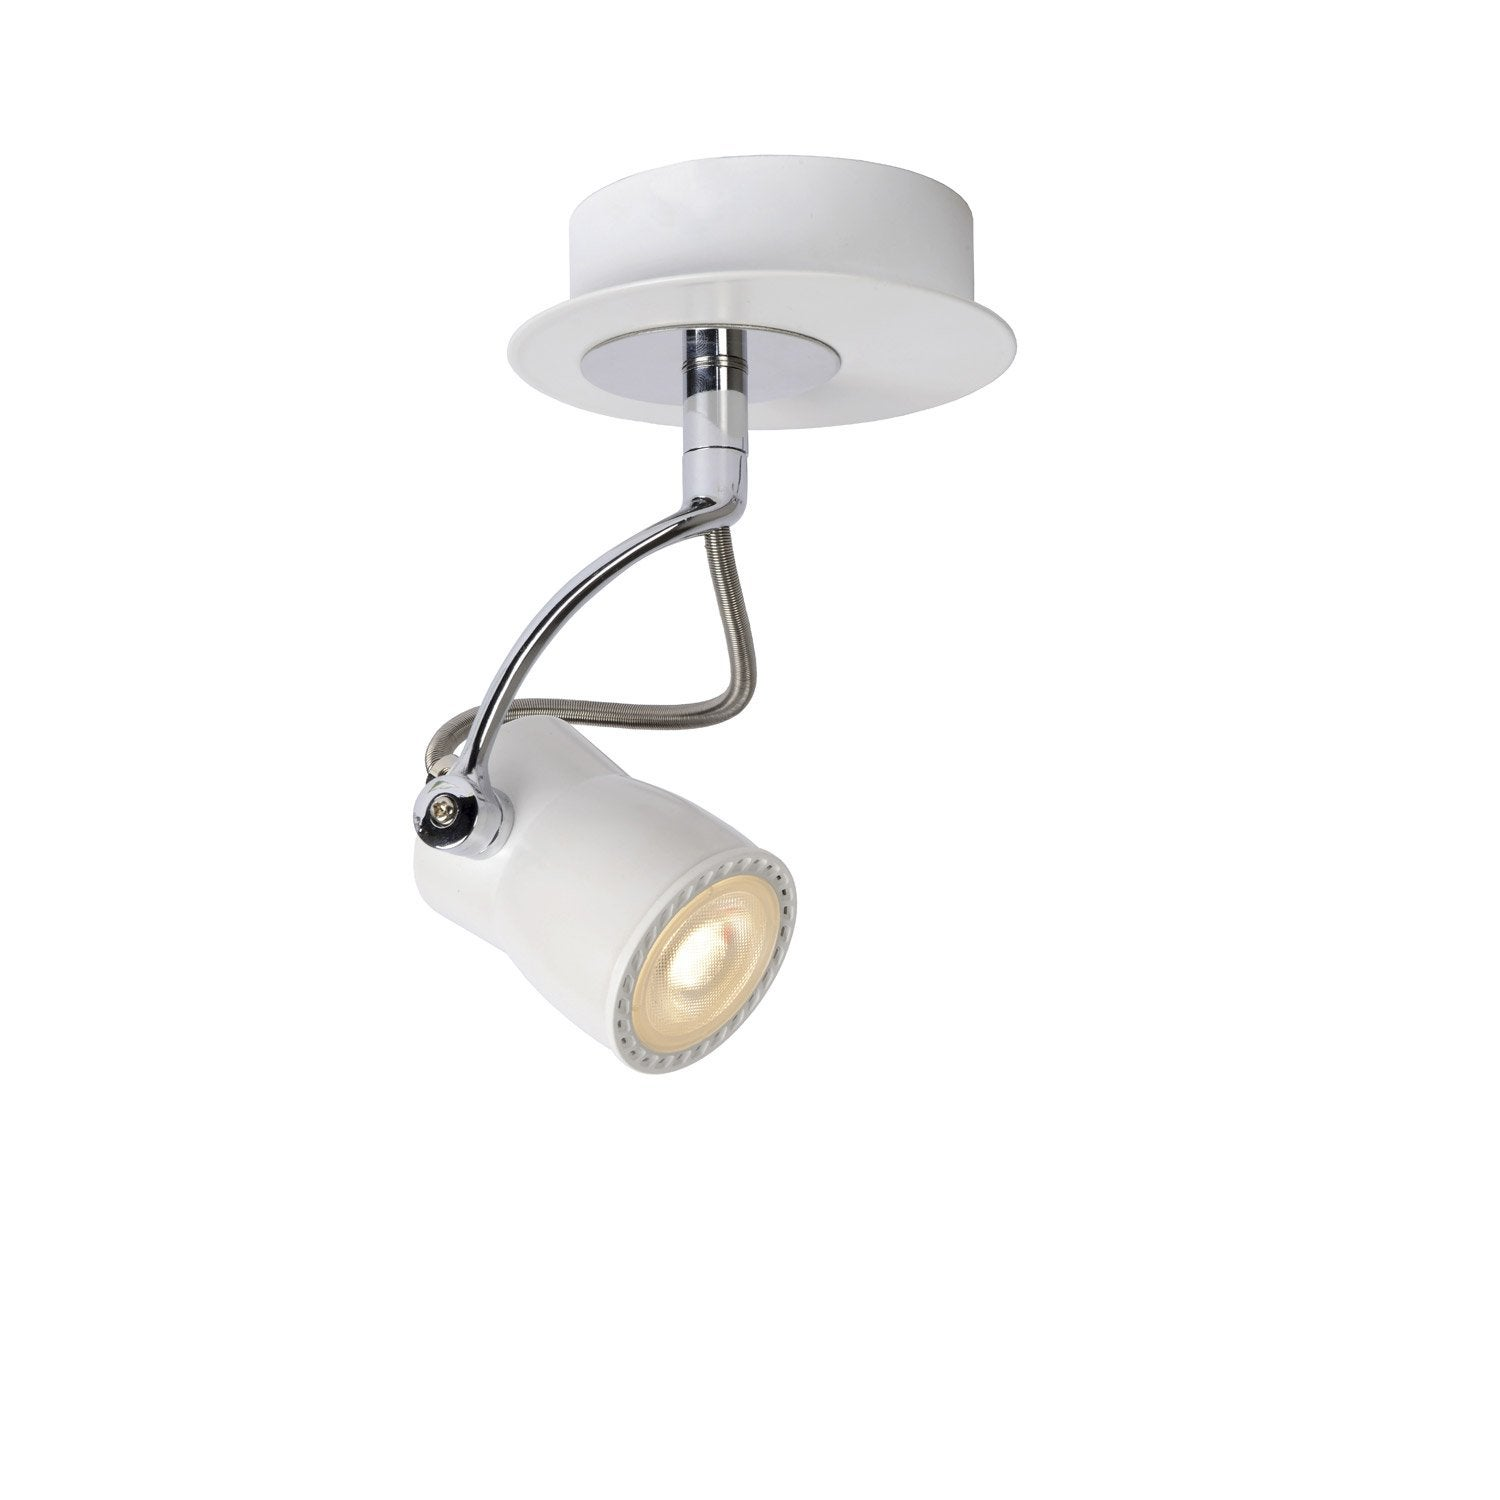 Spot pat re led 1 x gu10 blanc samba lucide leroy merlin for Spot a poser sur meuble